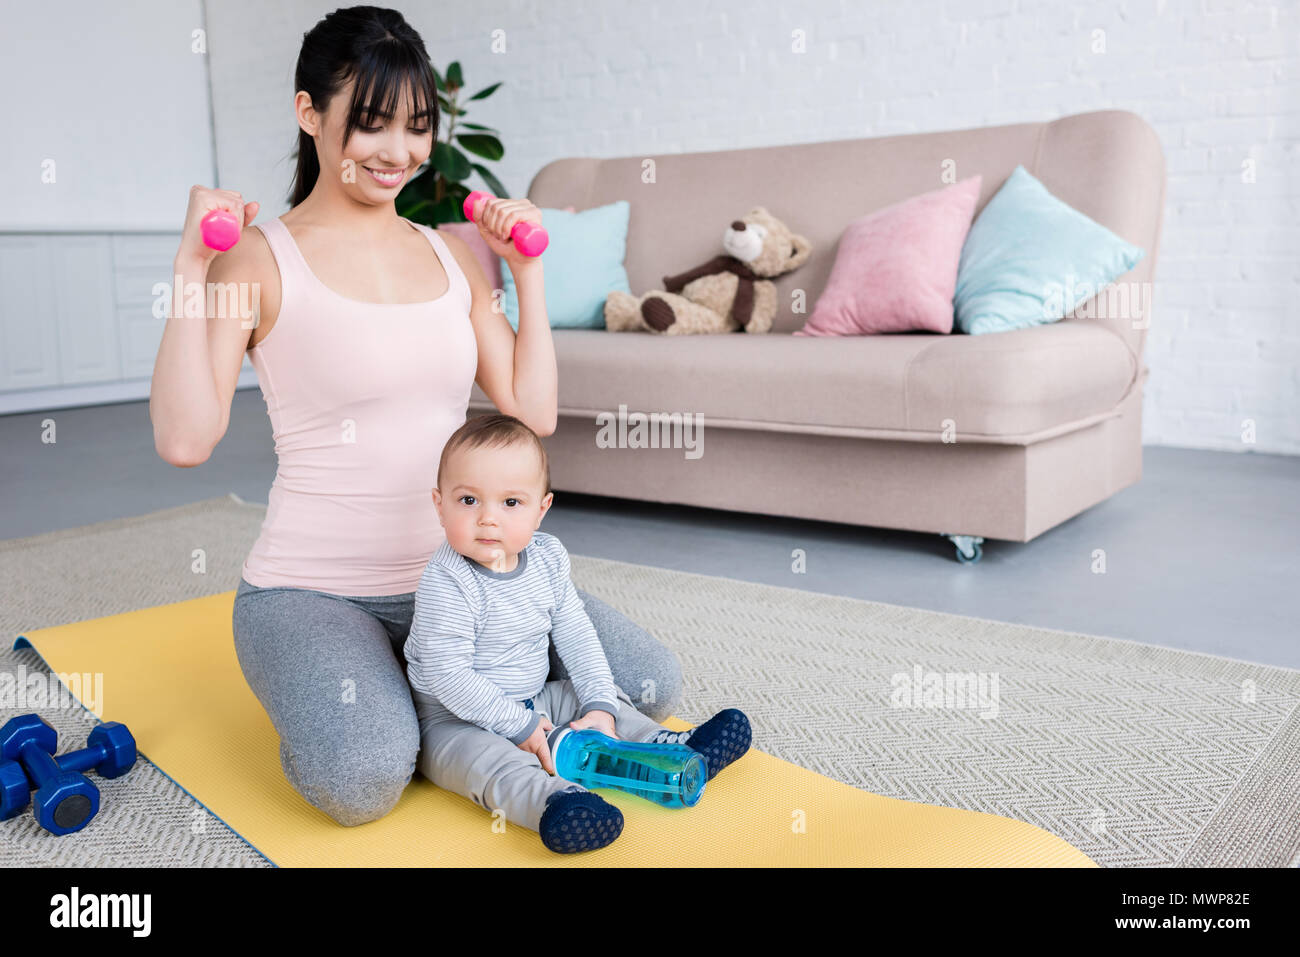 young smiling mother working out on yoga mat with her little child at home Stock Photo